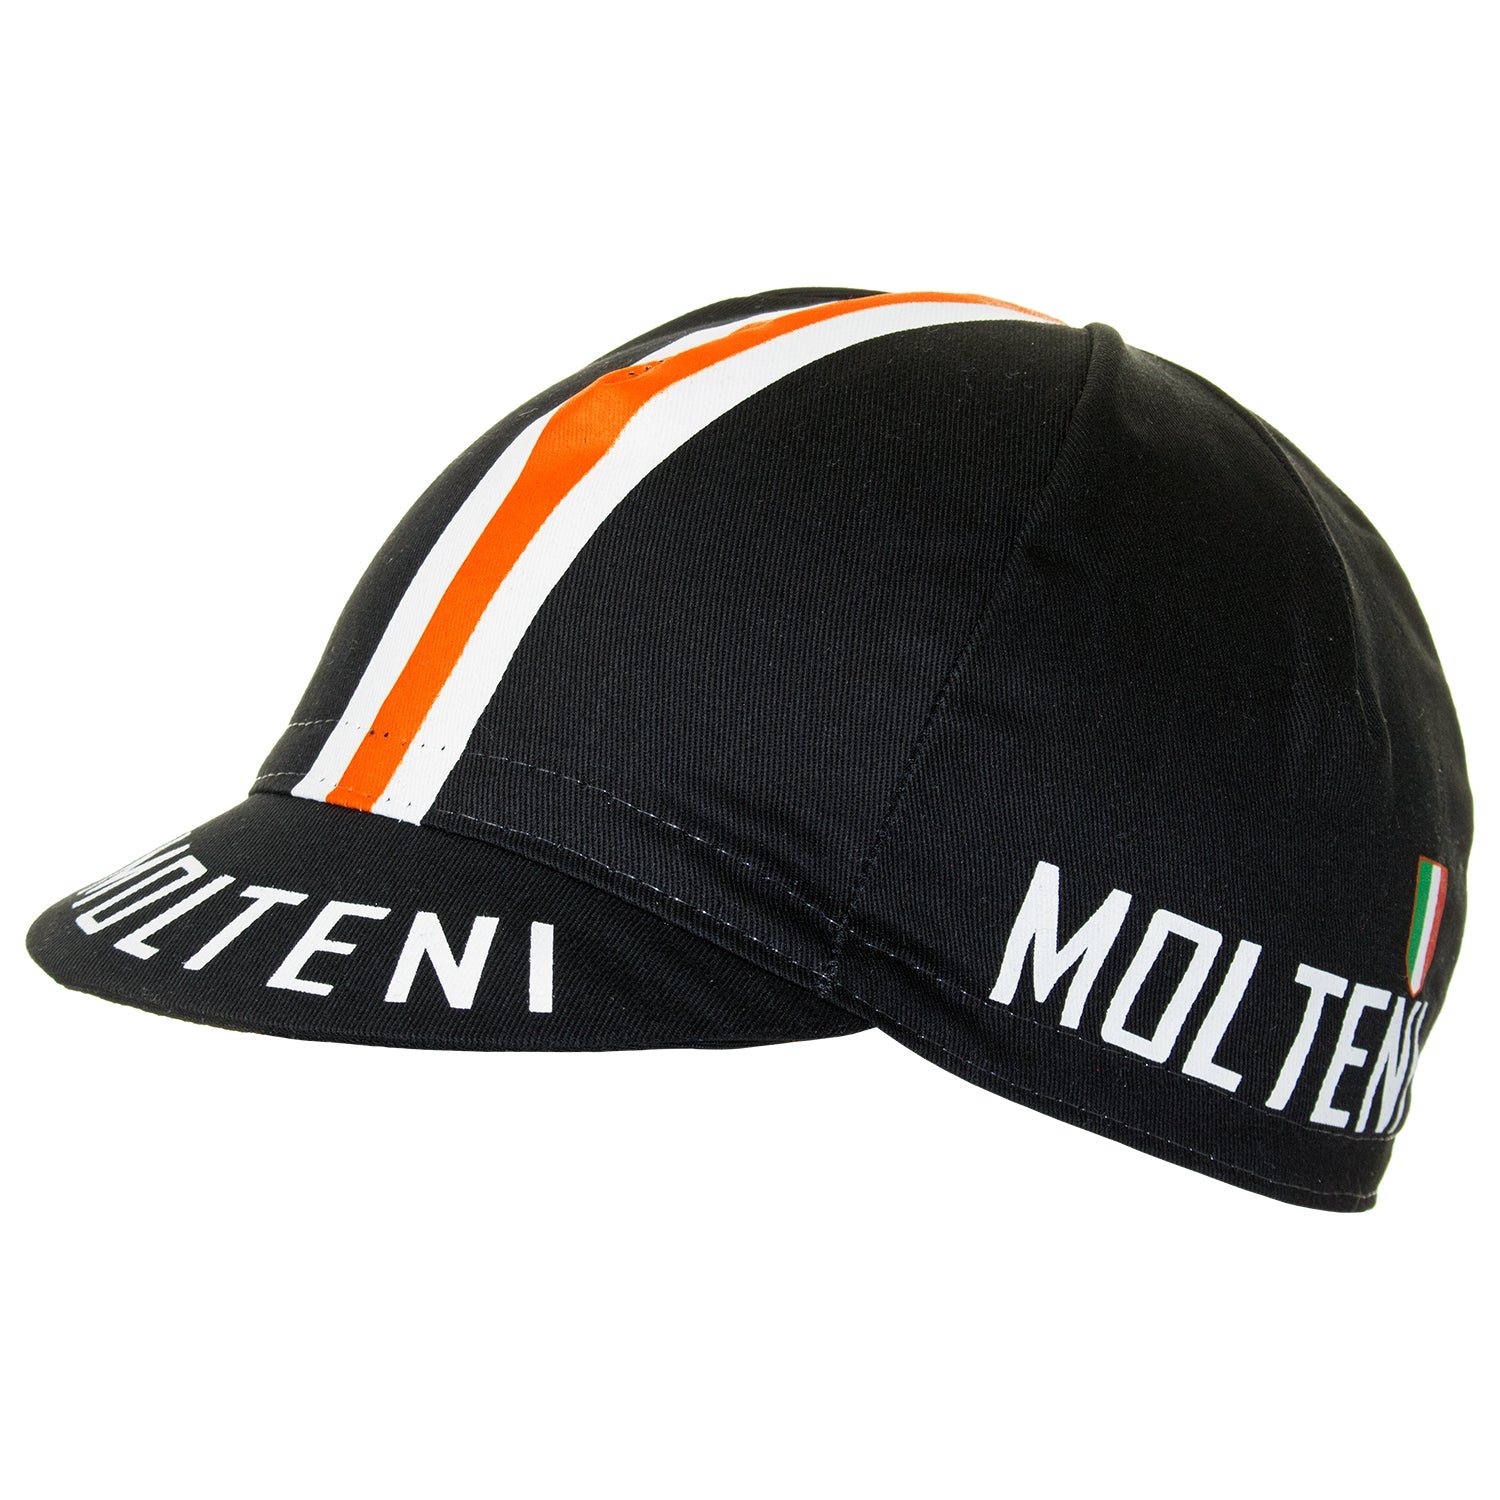 Molteni Retro Cotton Cycling Cap